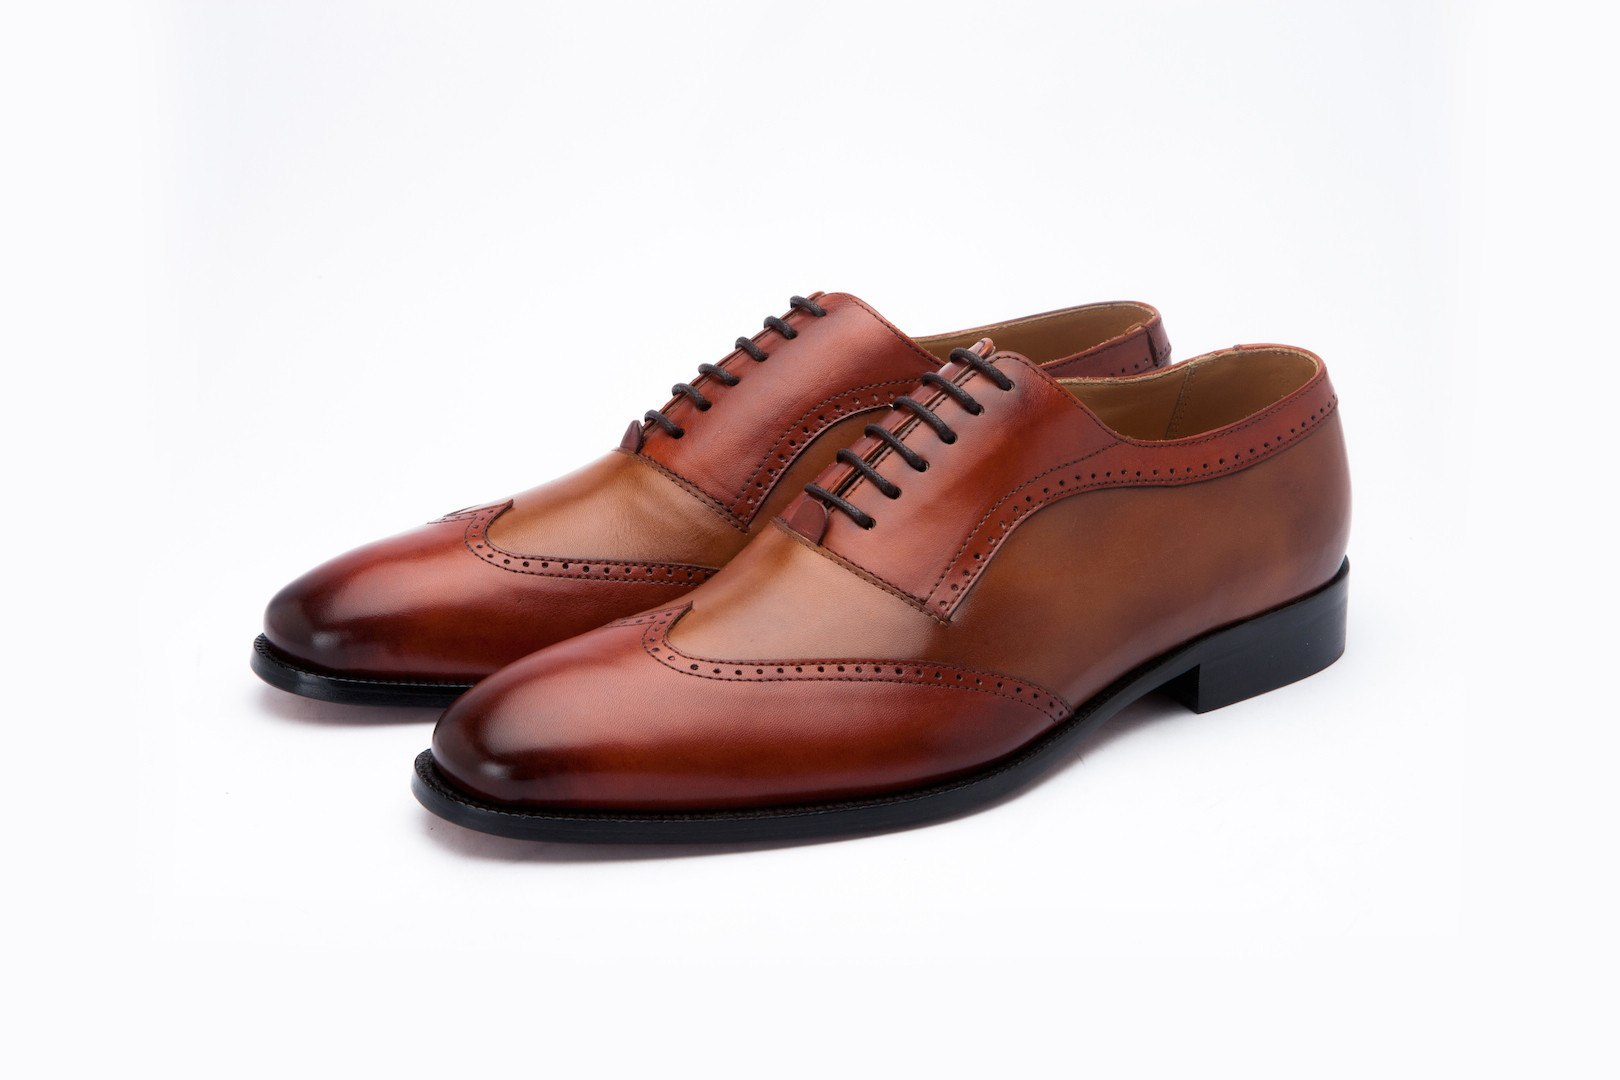 Oxfords - Twin Color Wingtip Oxford